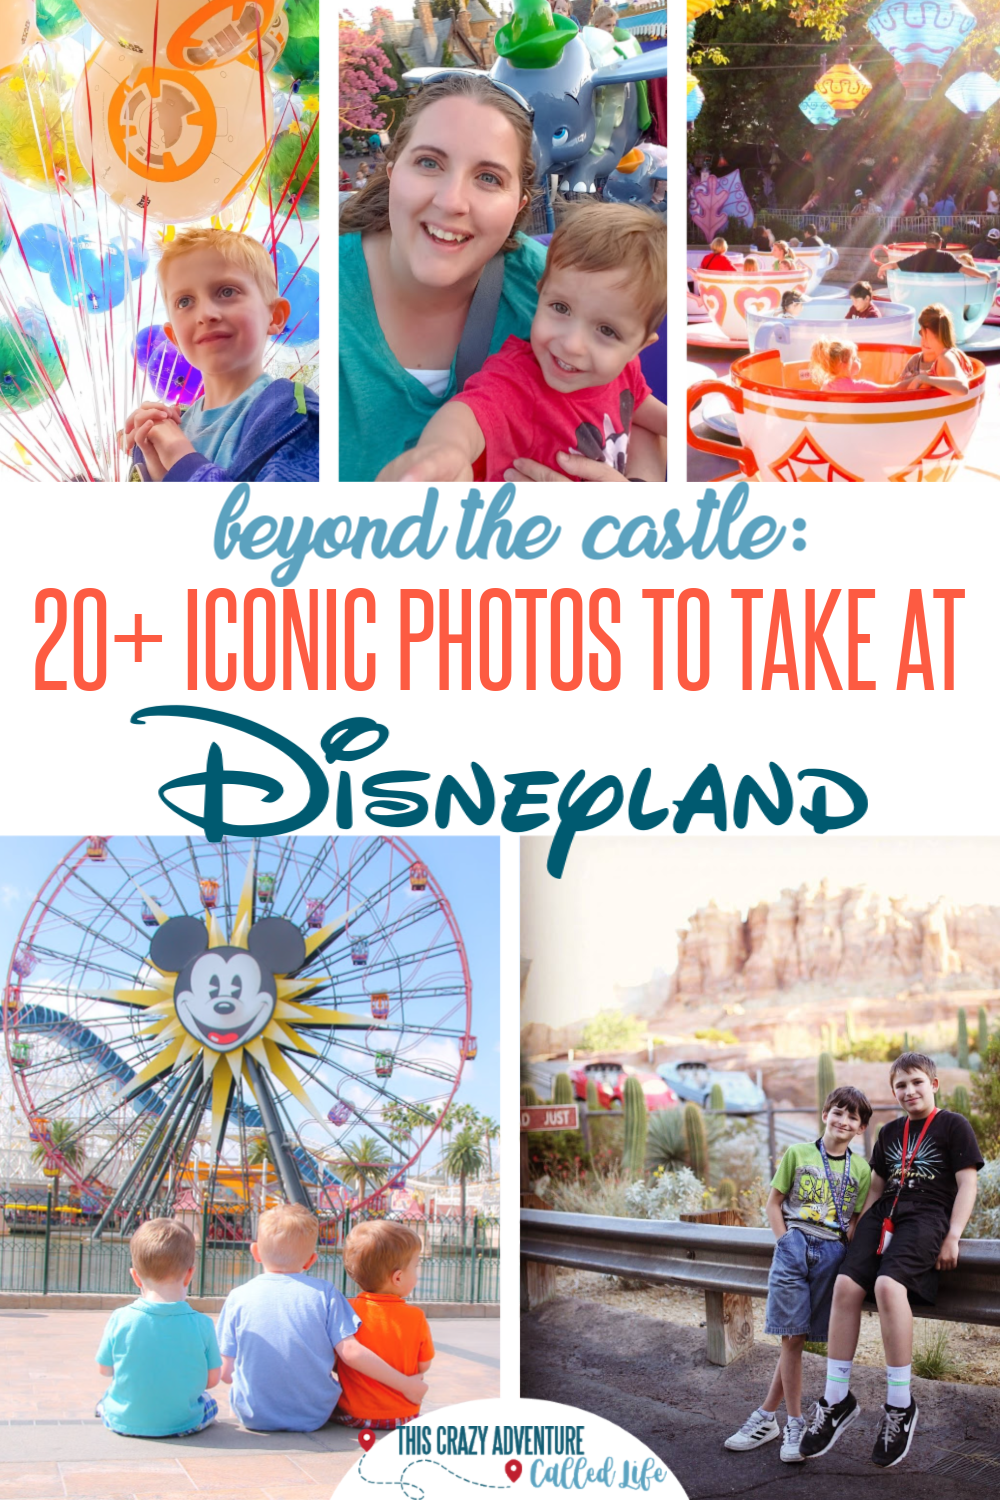 20+ Disneyland pictures that are at different locations then the castle. If you are heading to Disneyland and want non-castle photos (or the castle is under refurb) YOU NEED this list. Insider tips for where to get photos that scream